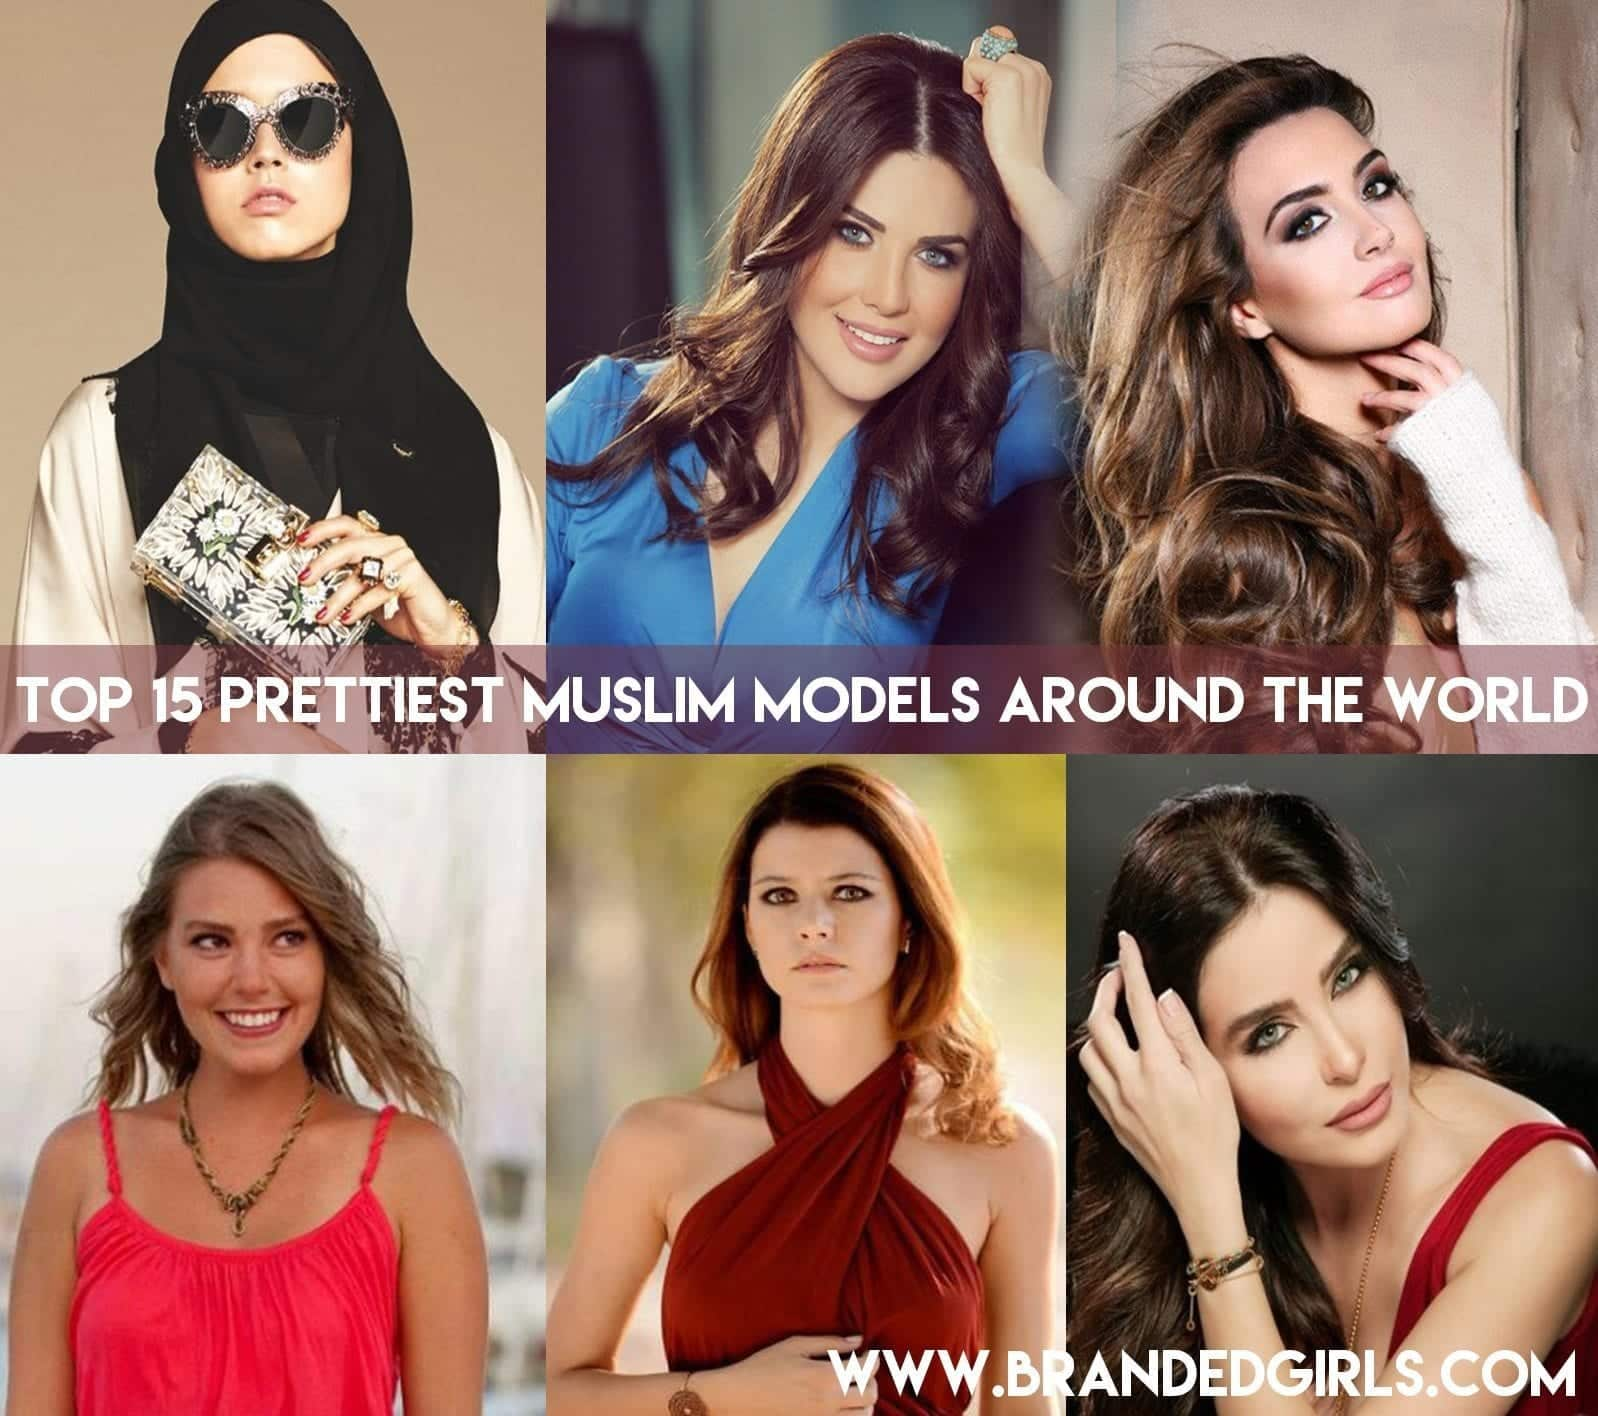 Top 15 Prettiest Muslim Models Around the World